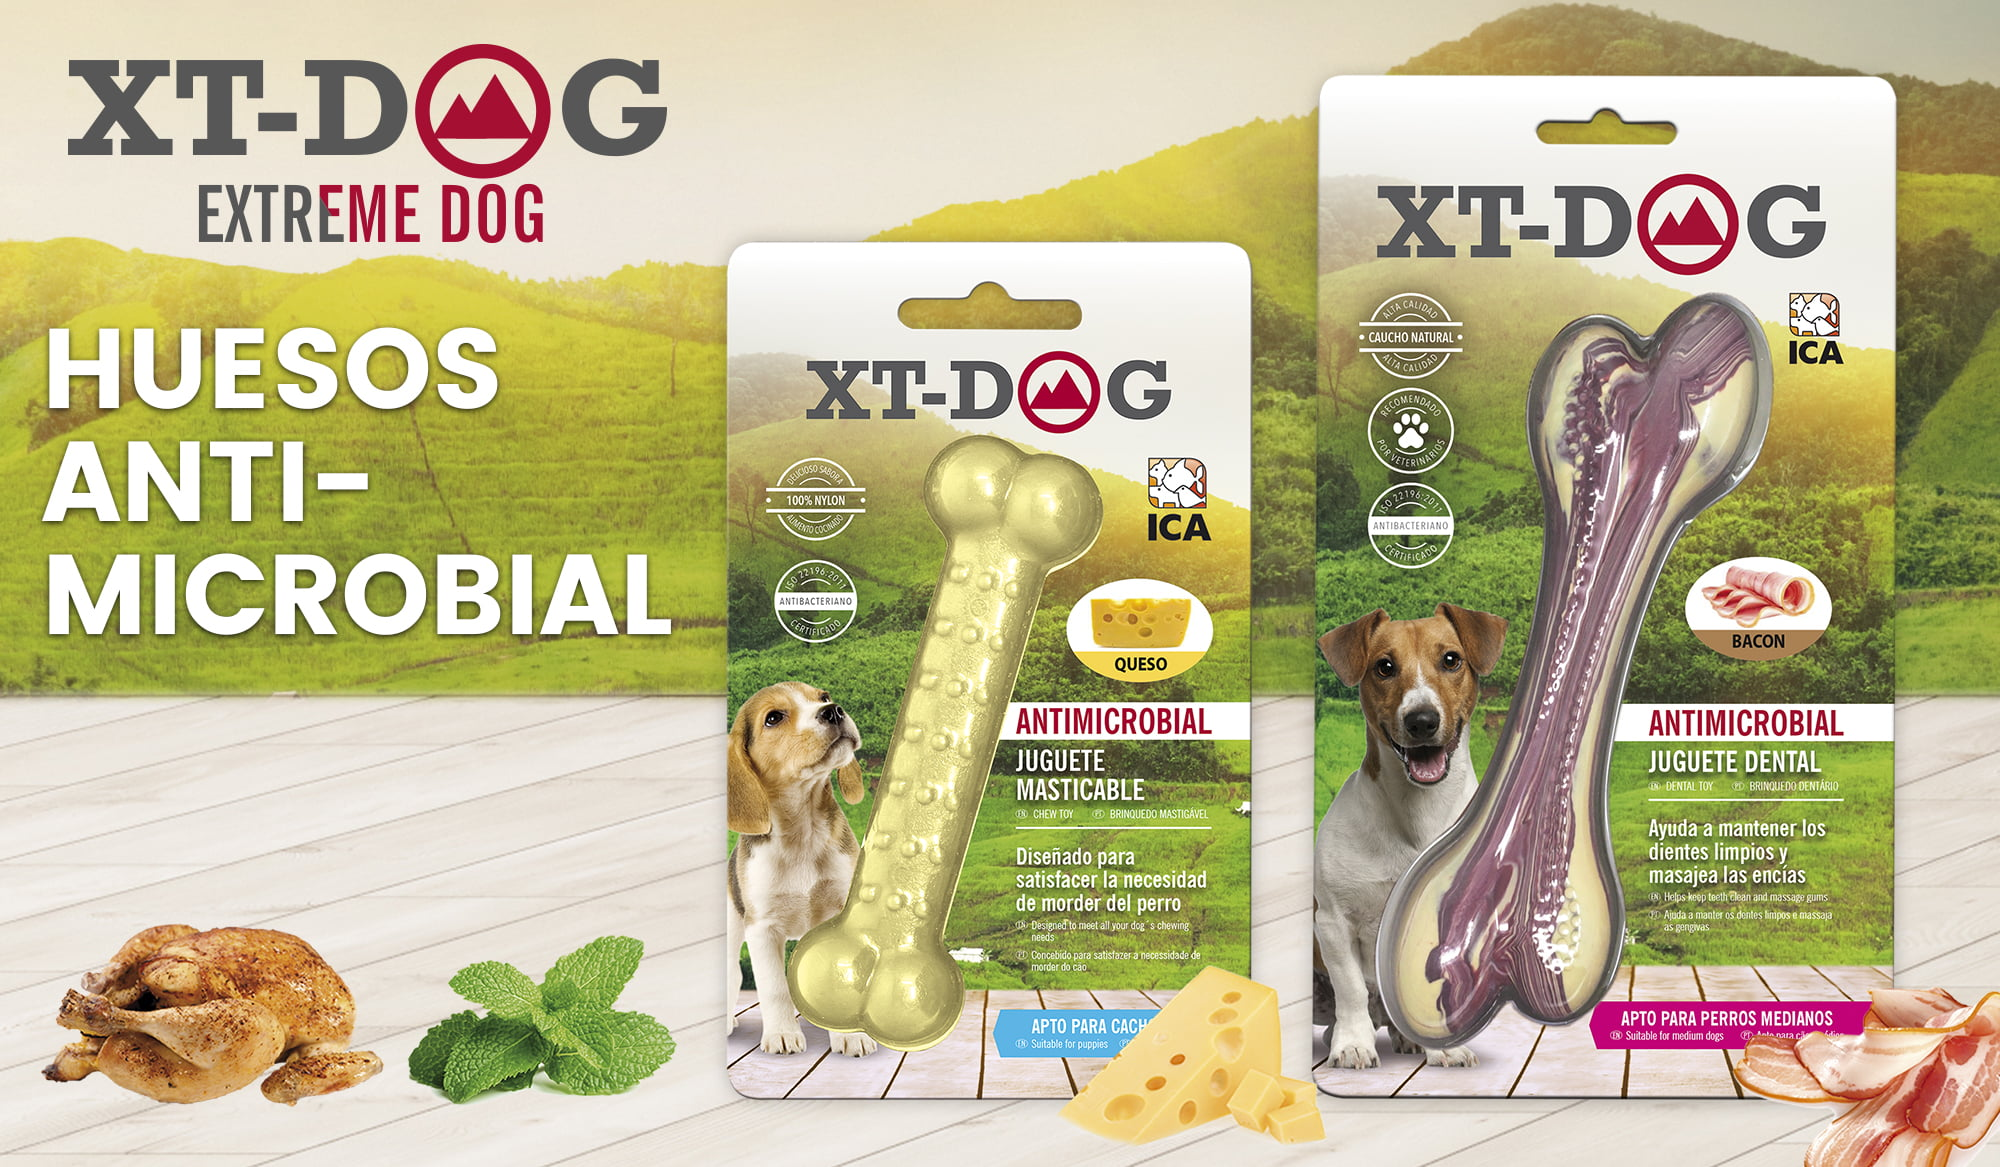 Juguetes dentales antimicrobianos XT-Dog